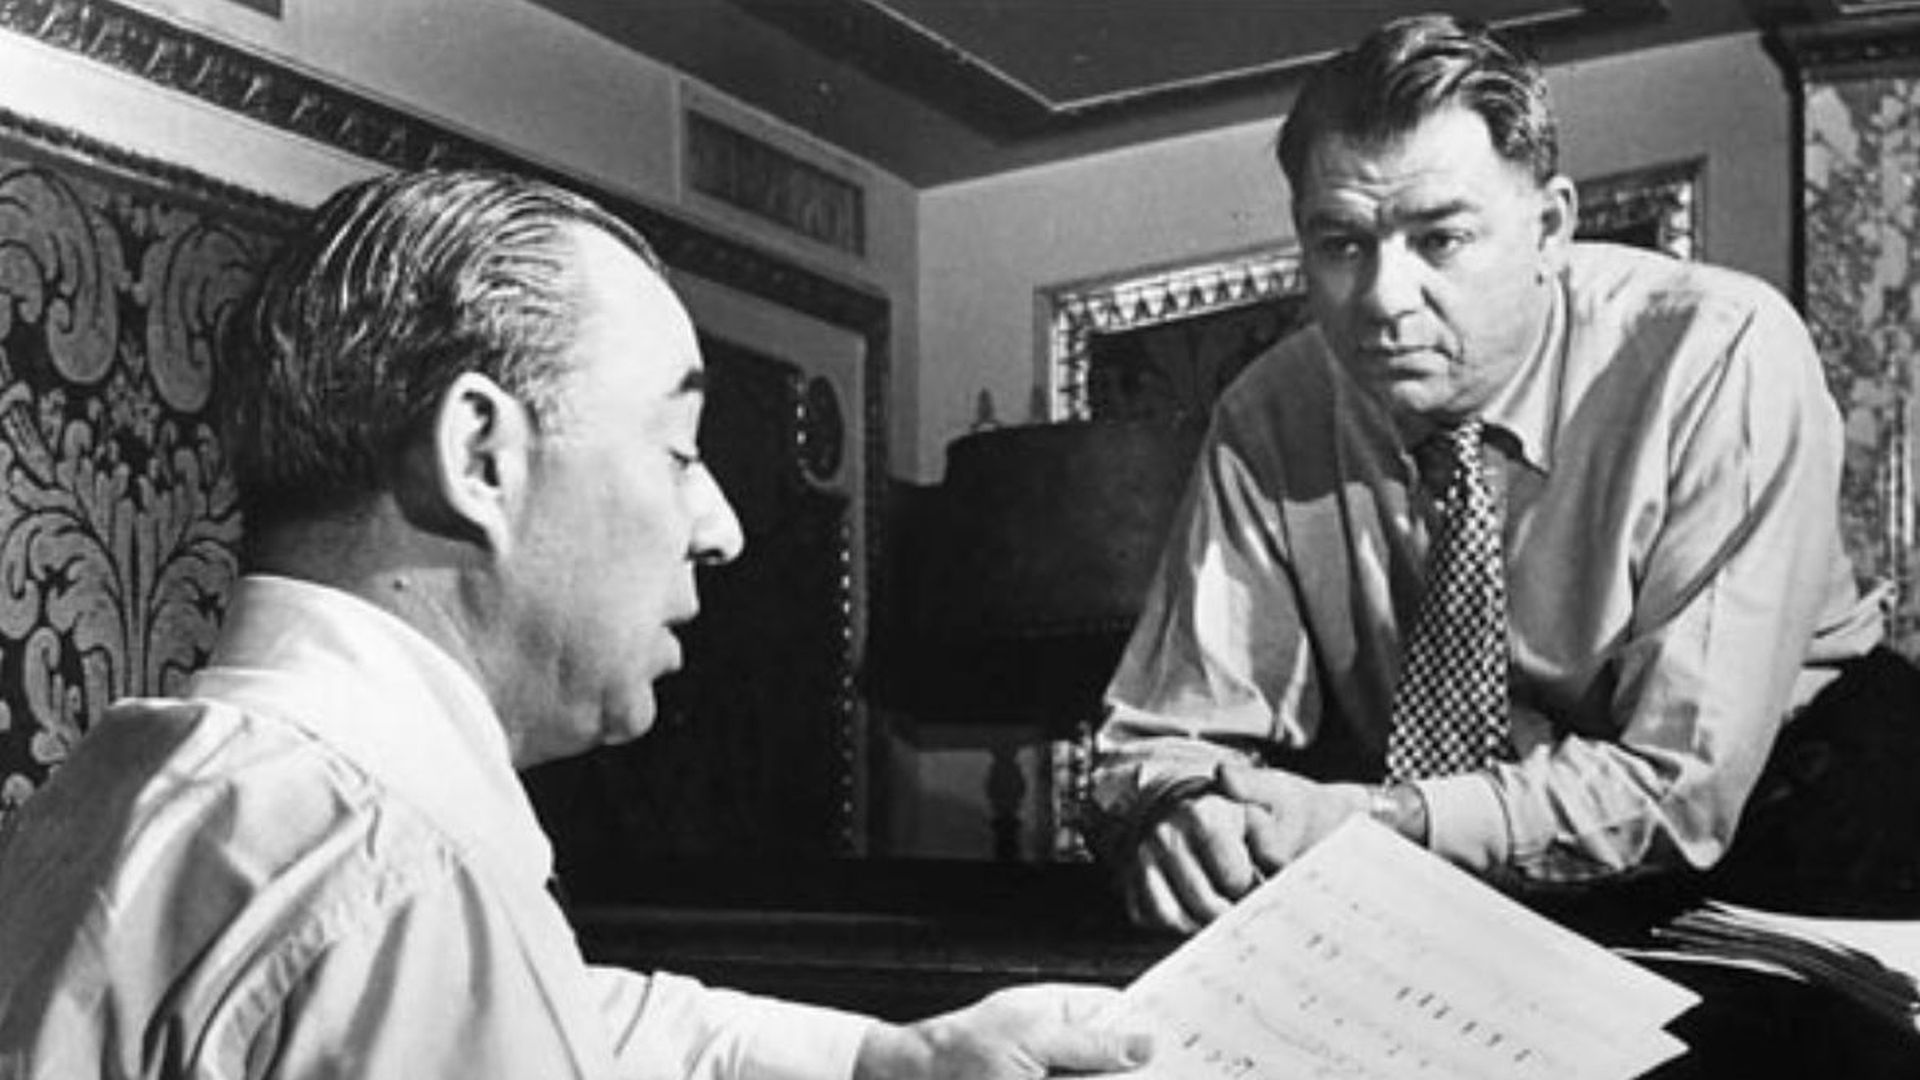 Do you know the lyrics to these rodgers and hammerstein songs do you know the lyrics to these rodgers and hammerstein songs howstuffworks m4hsunfo